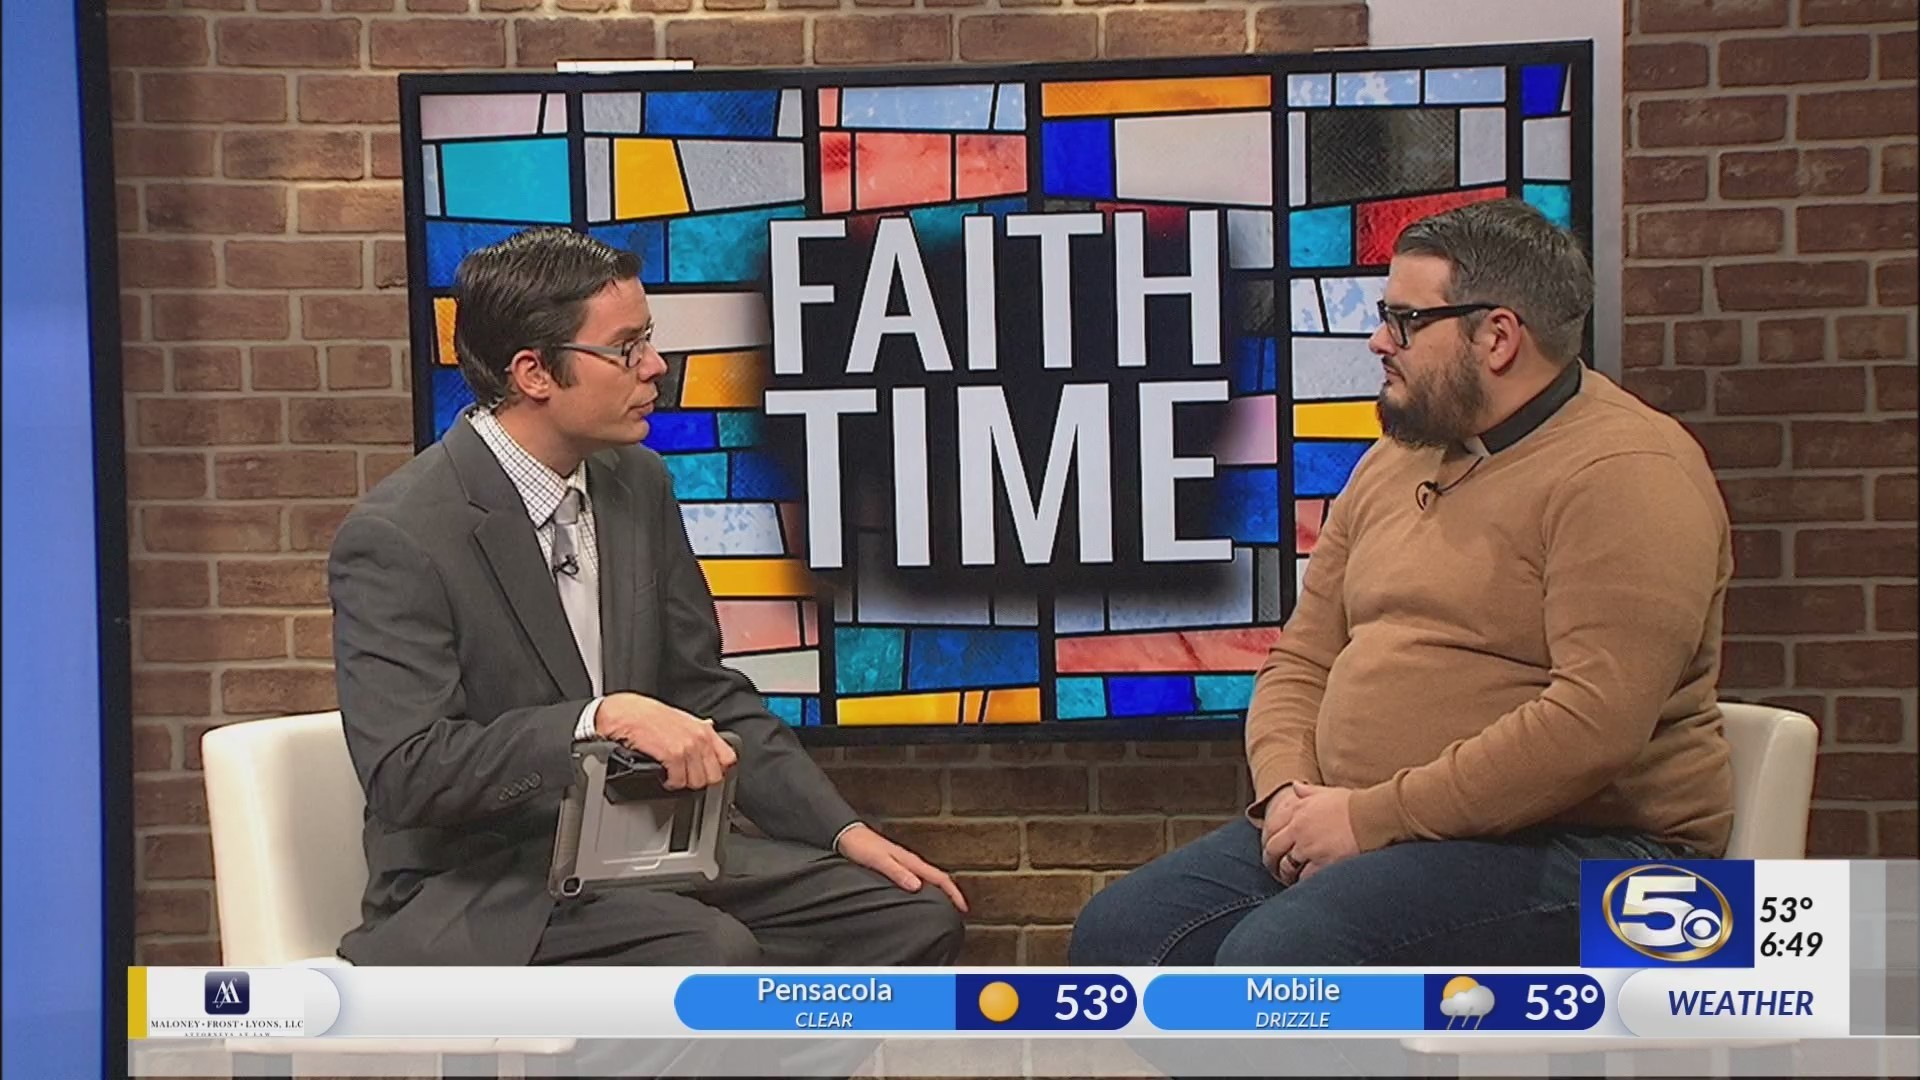 Faith_Time___Jubilee_services_0_20181125130044